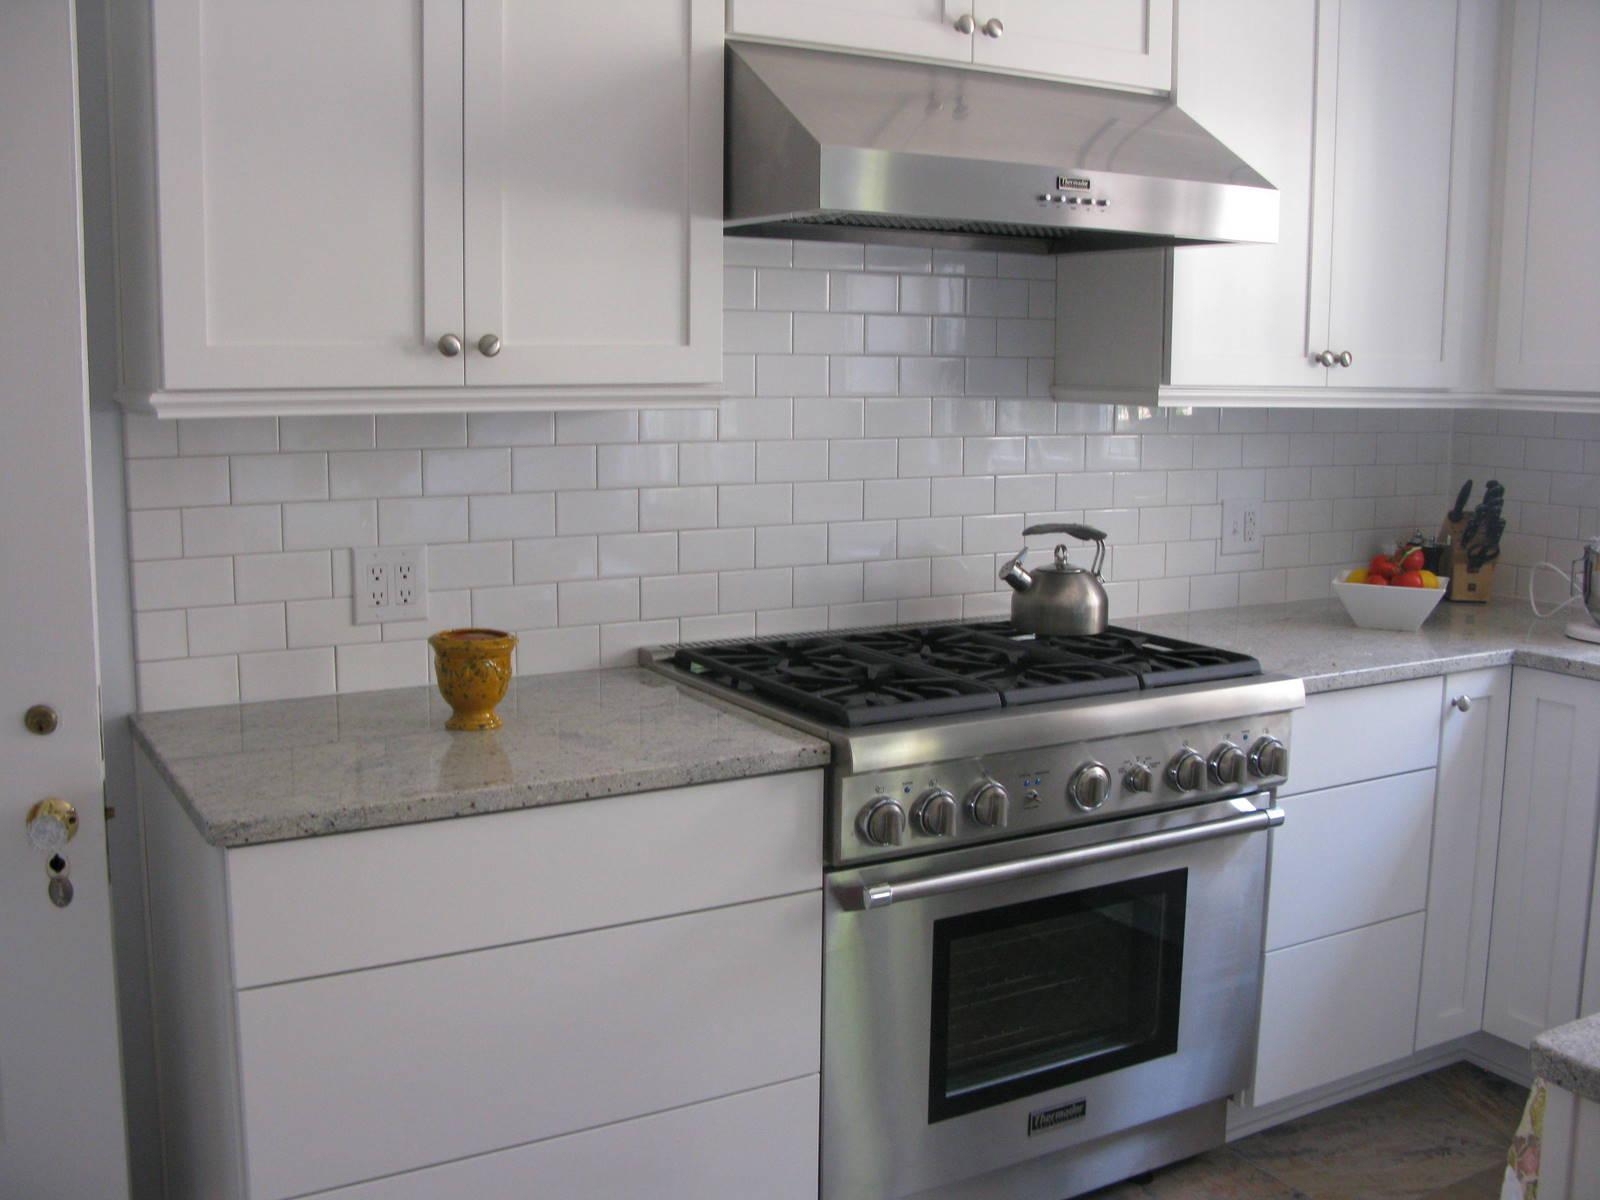 Complete Old Fashioned Kitchen with White Cabinets and Clean Kitchen Tile Backsplash near Grey Quartz Countertop